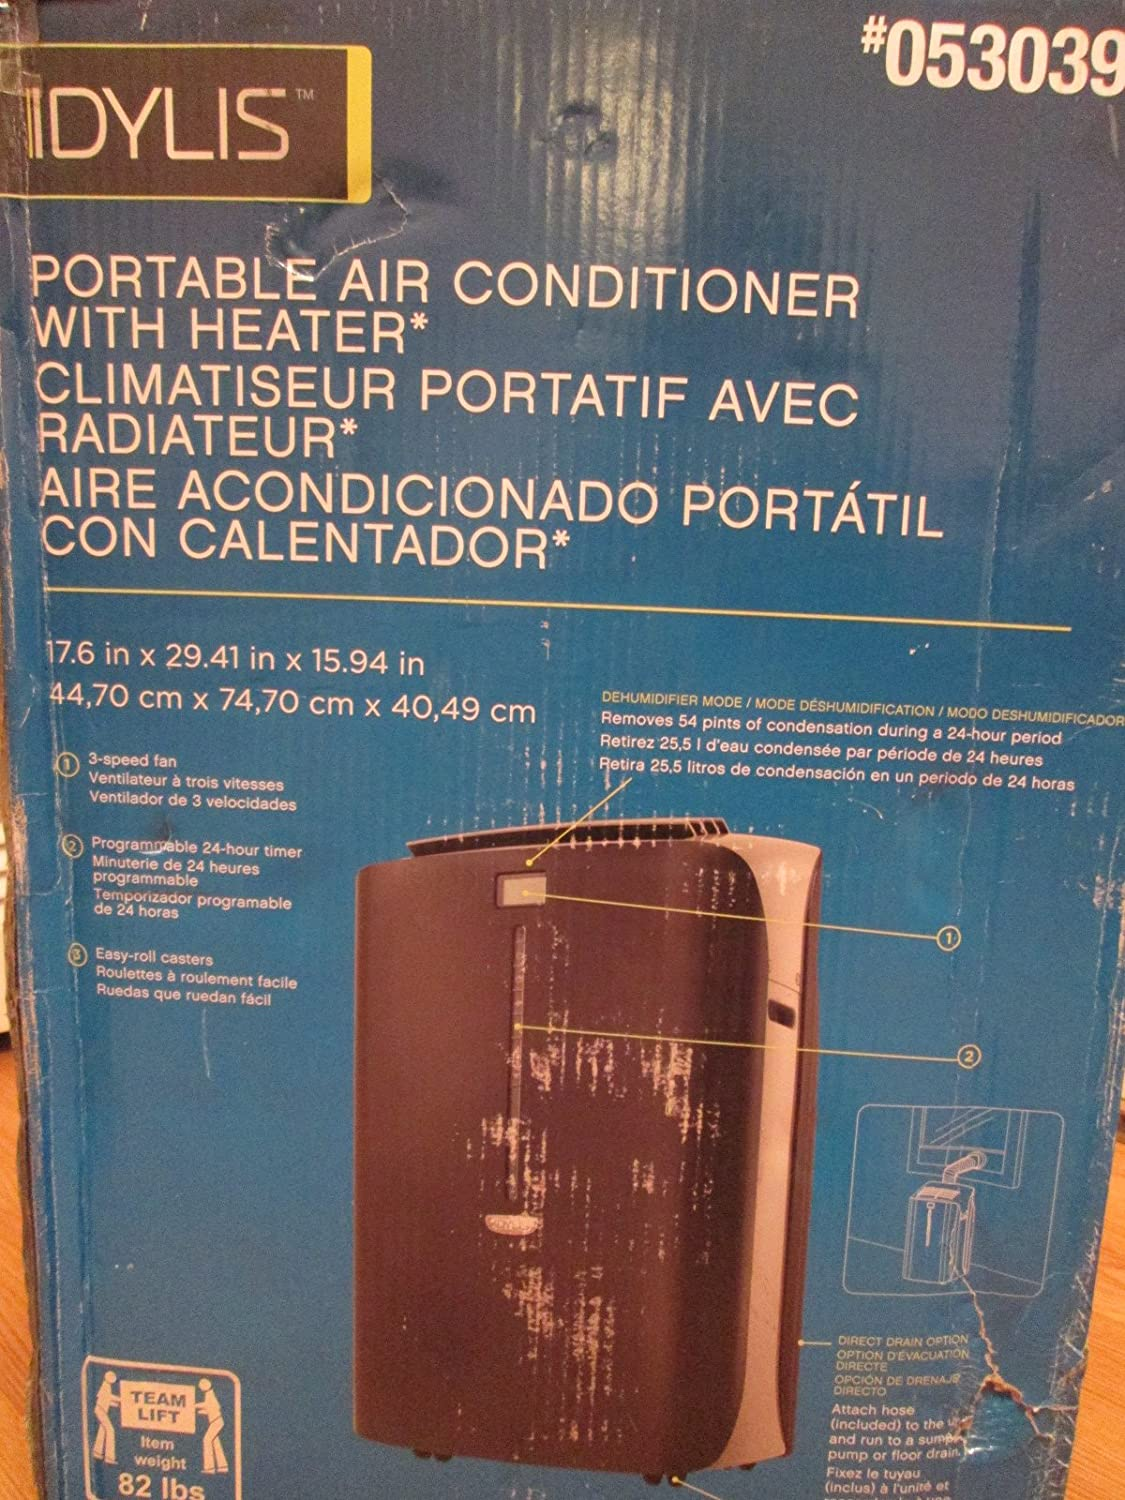 Koolking Portable Air Conditioner Instruction Manual